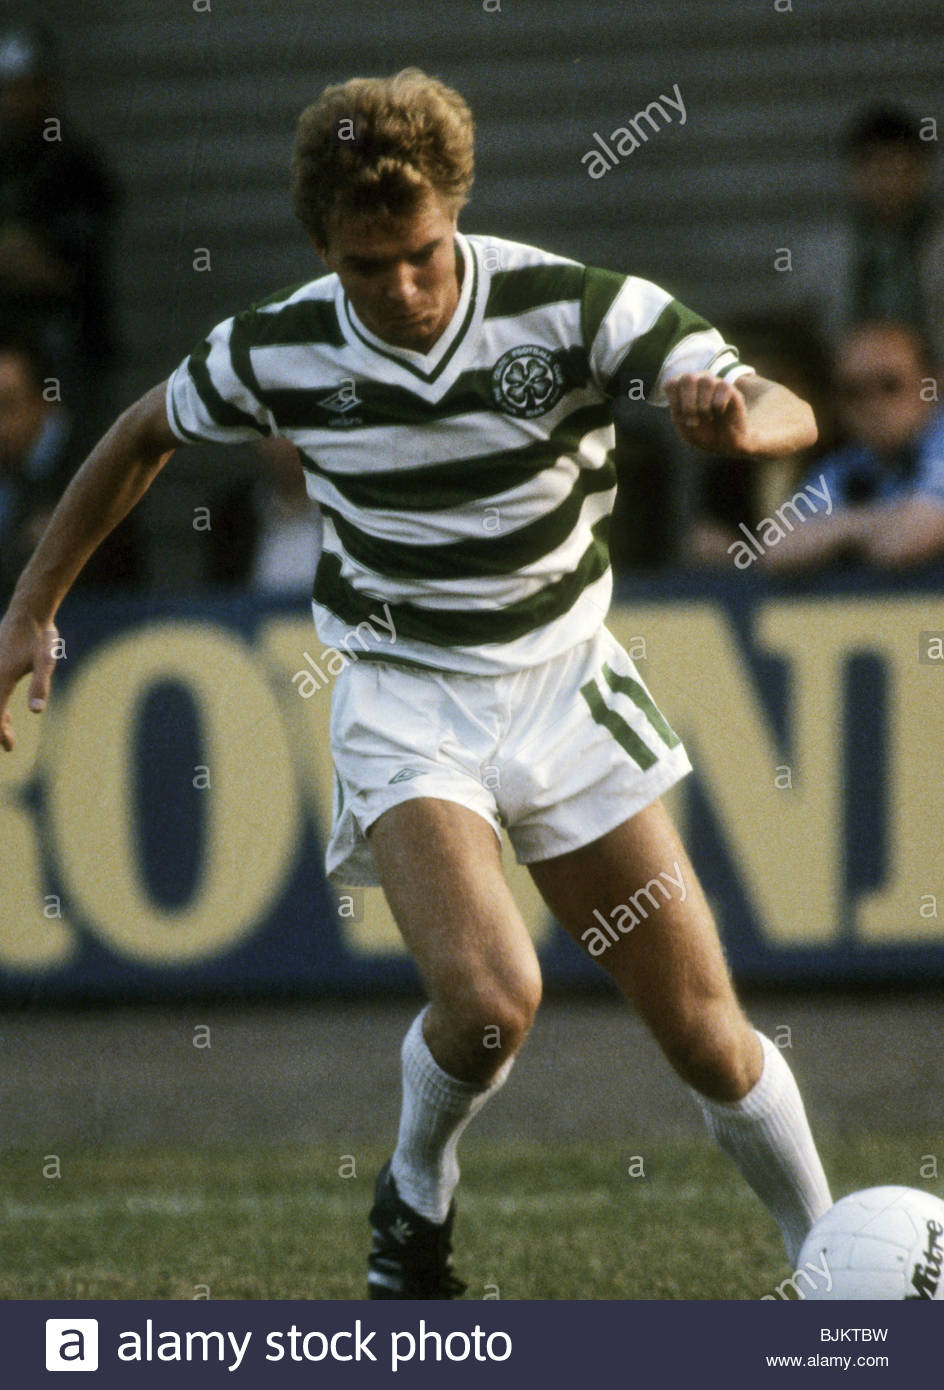 09/08/83 GLASGOW CUP PARTICK THISTLE v CELTIC (0-2) FIRHILL - GLASGOW Danny Crainie in action for Celtic. - Stock Image